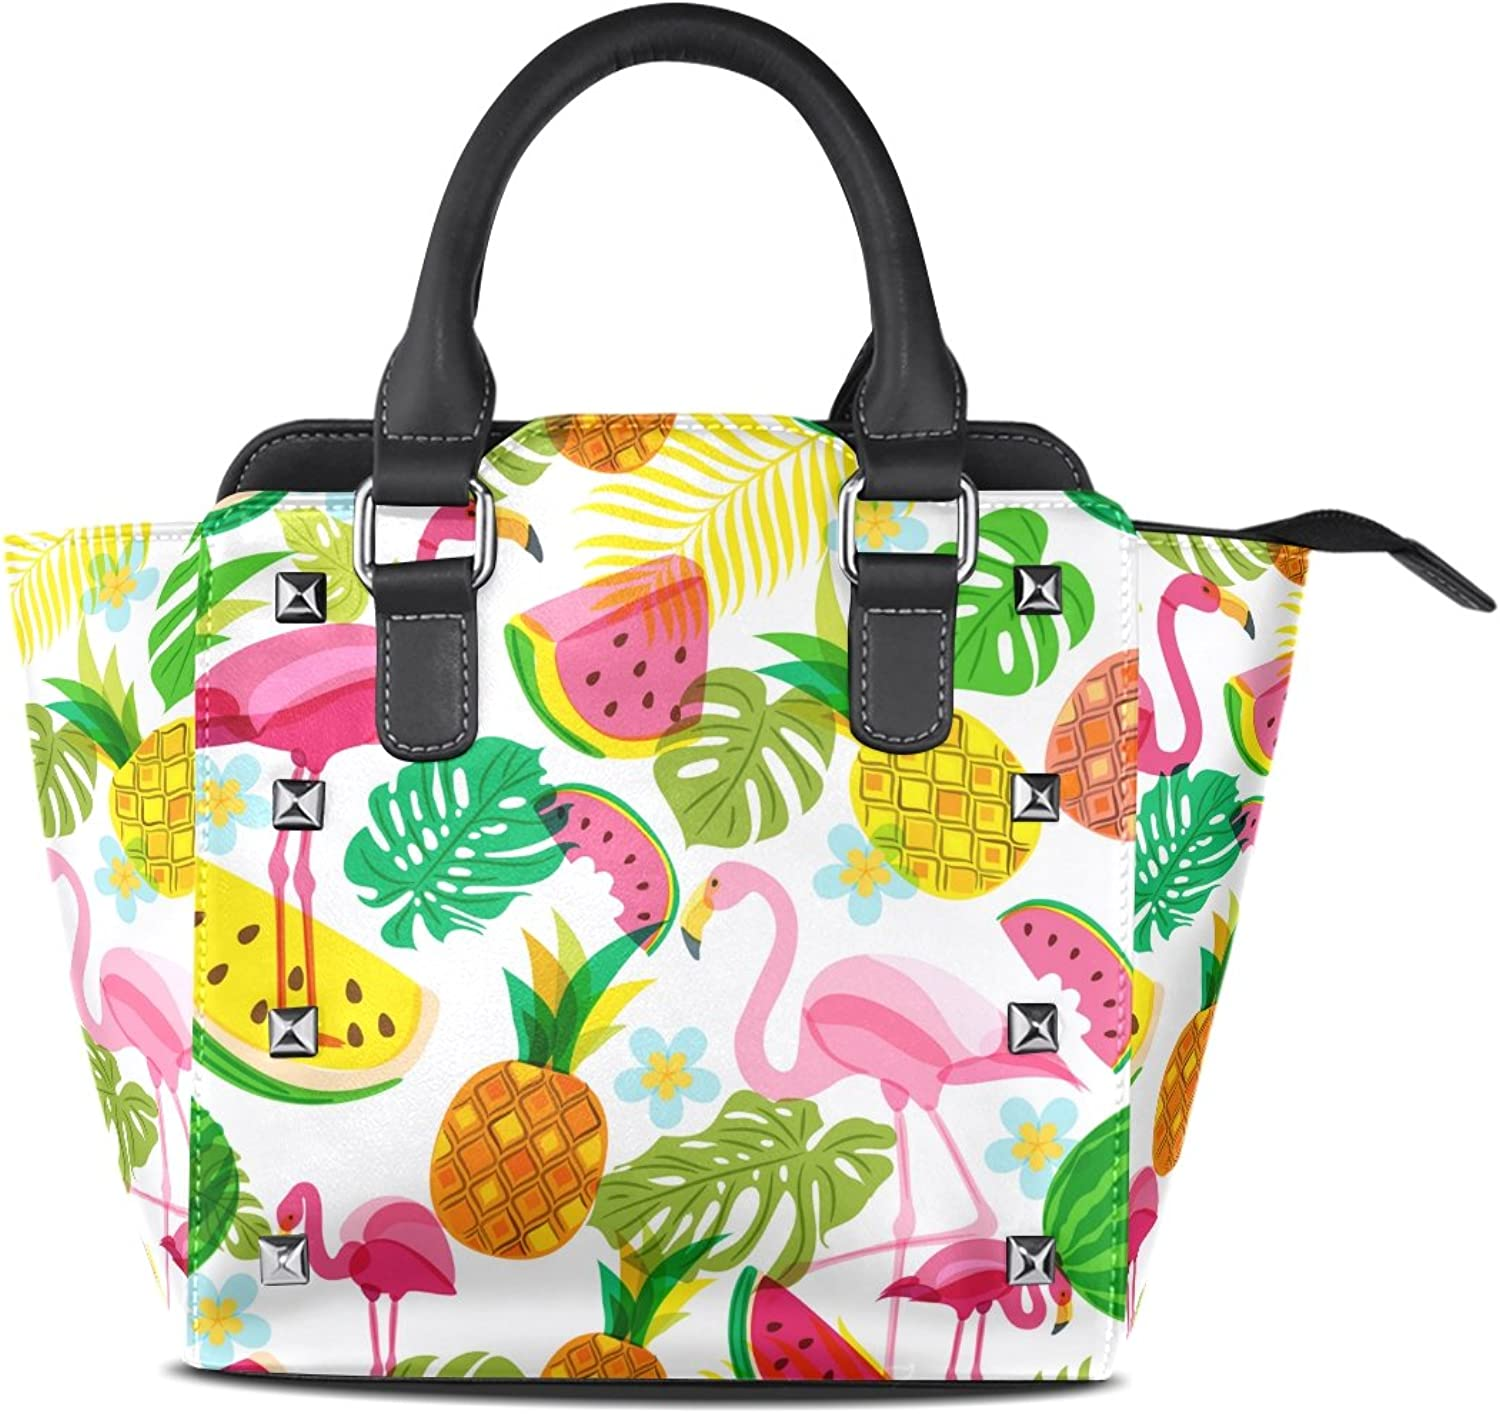 My Little Nest Women's Top Handle Satchel Handbag Summer Tropical Pink Flamingo Watermelon Pineapples Ladies PU Leather Shoulder Bag Crossbody Bag